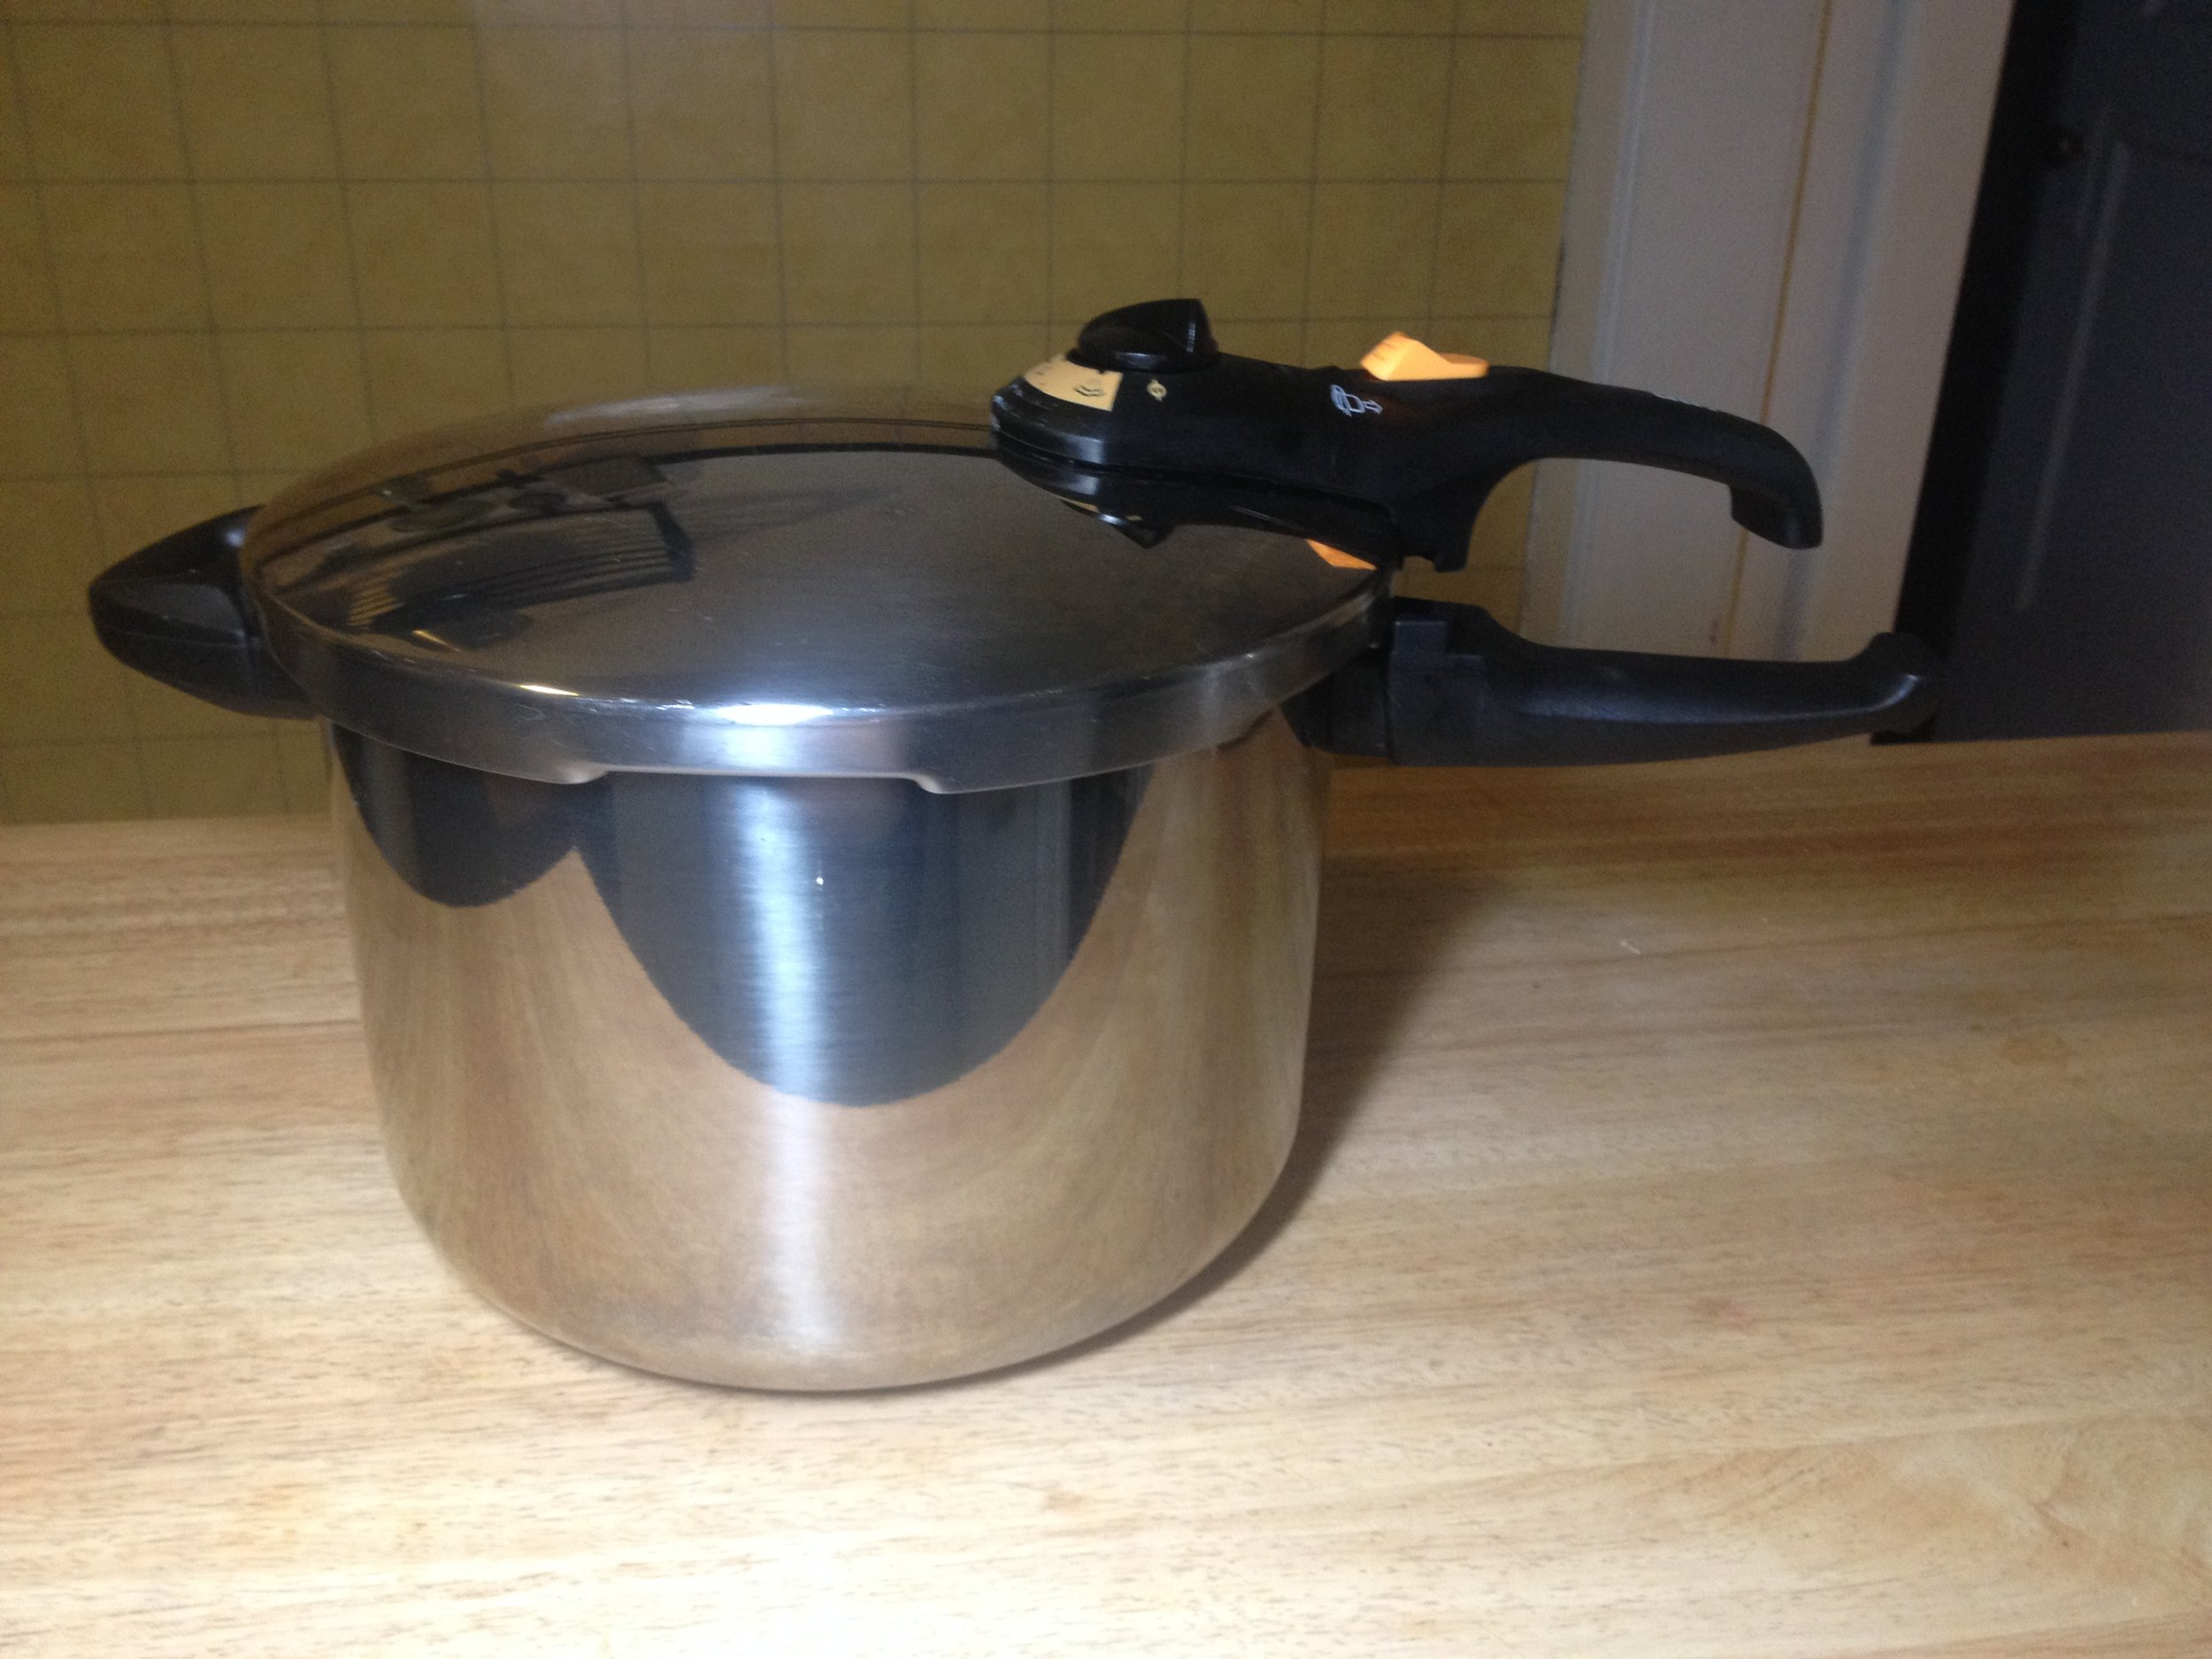 Fagor duo 8 quart pressure cooker - Our Beloved Fagor Duo 8 Quart Stainless Steel Pressure Cooker